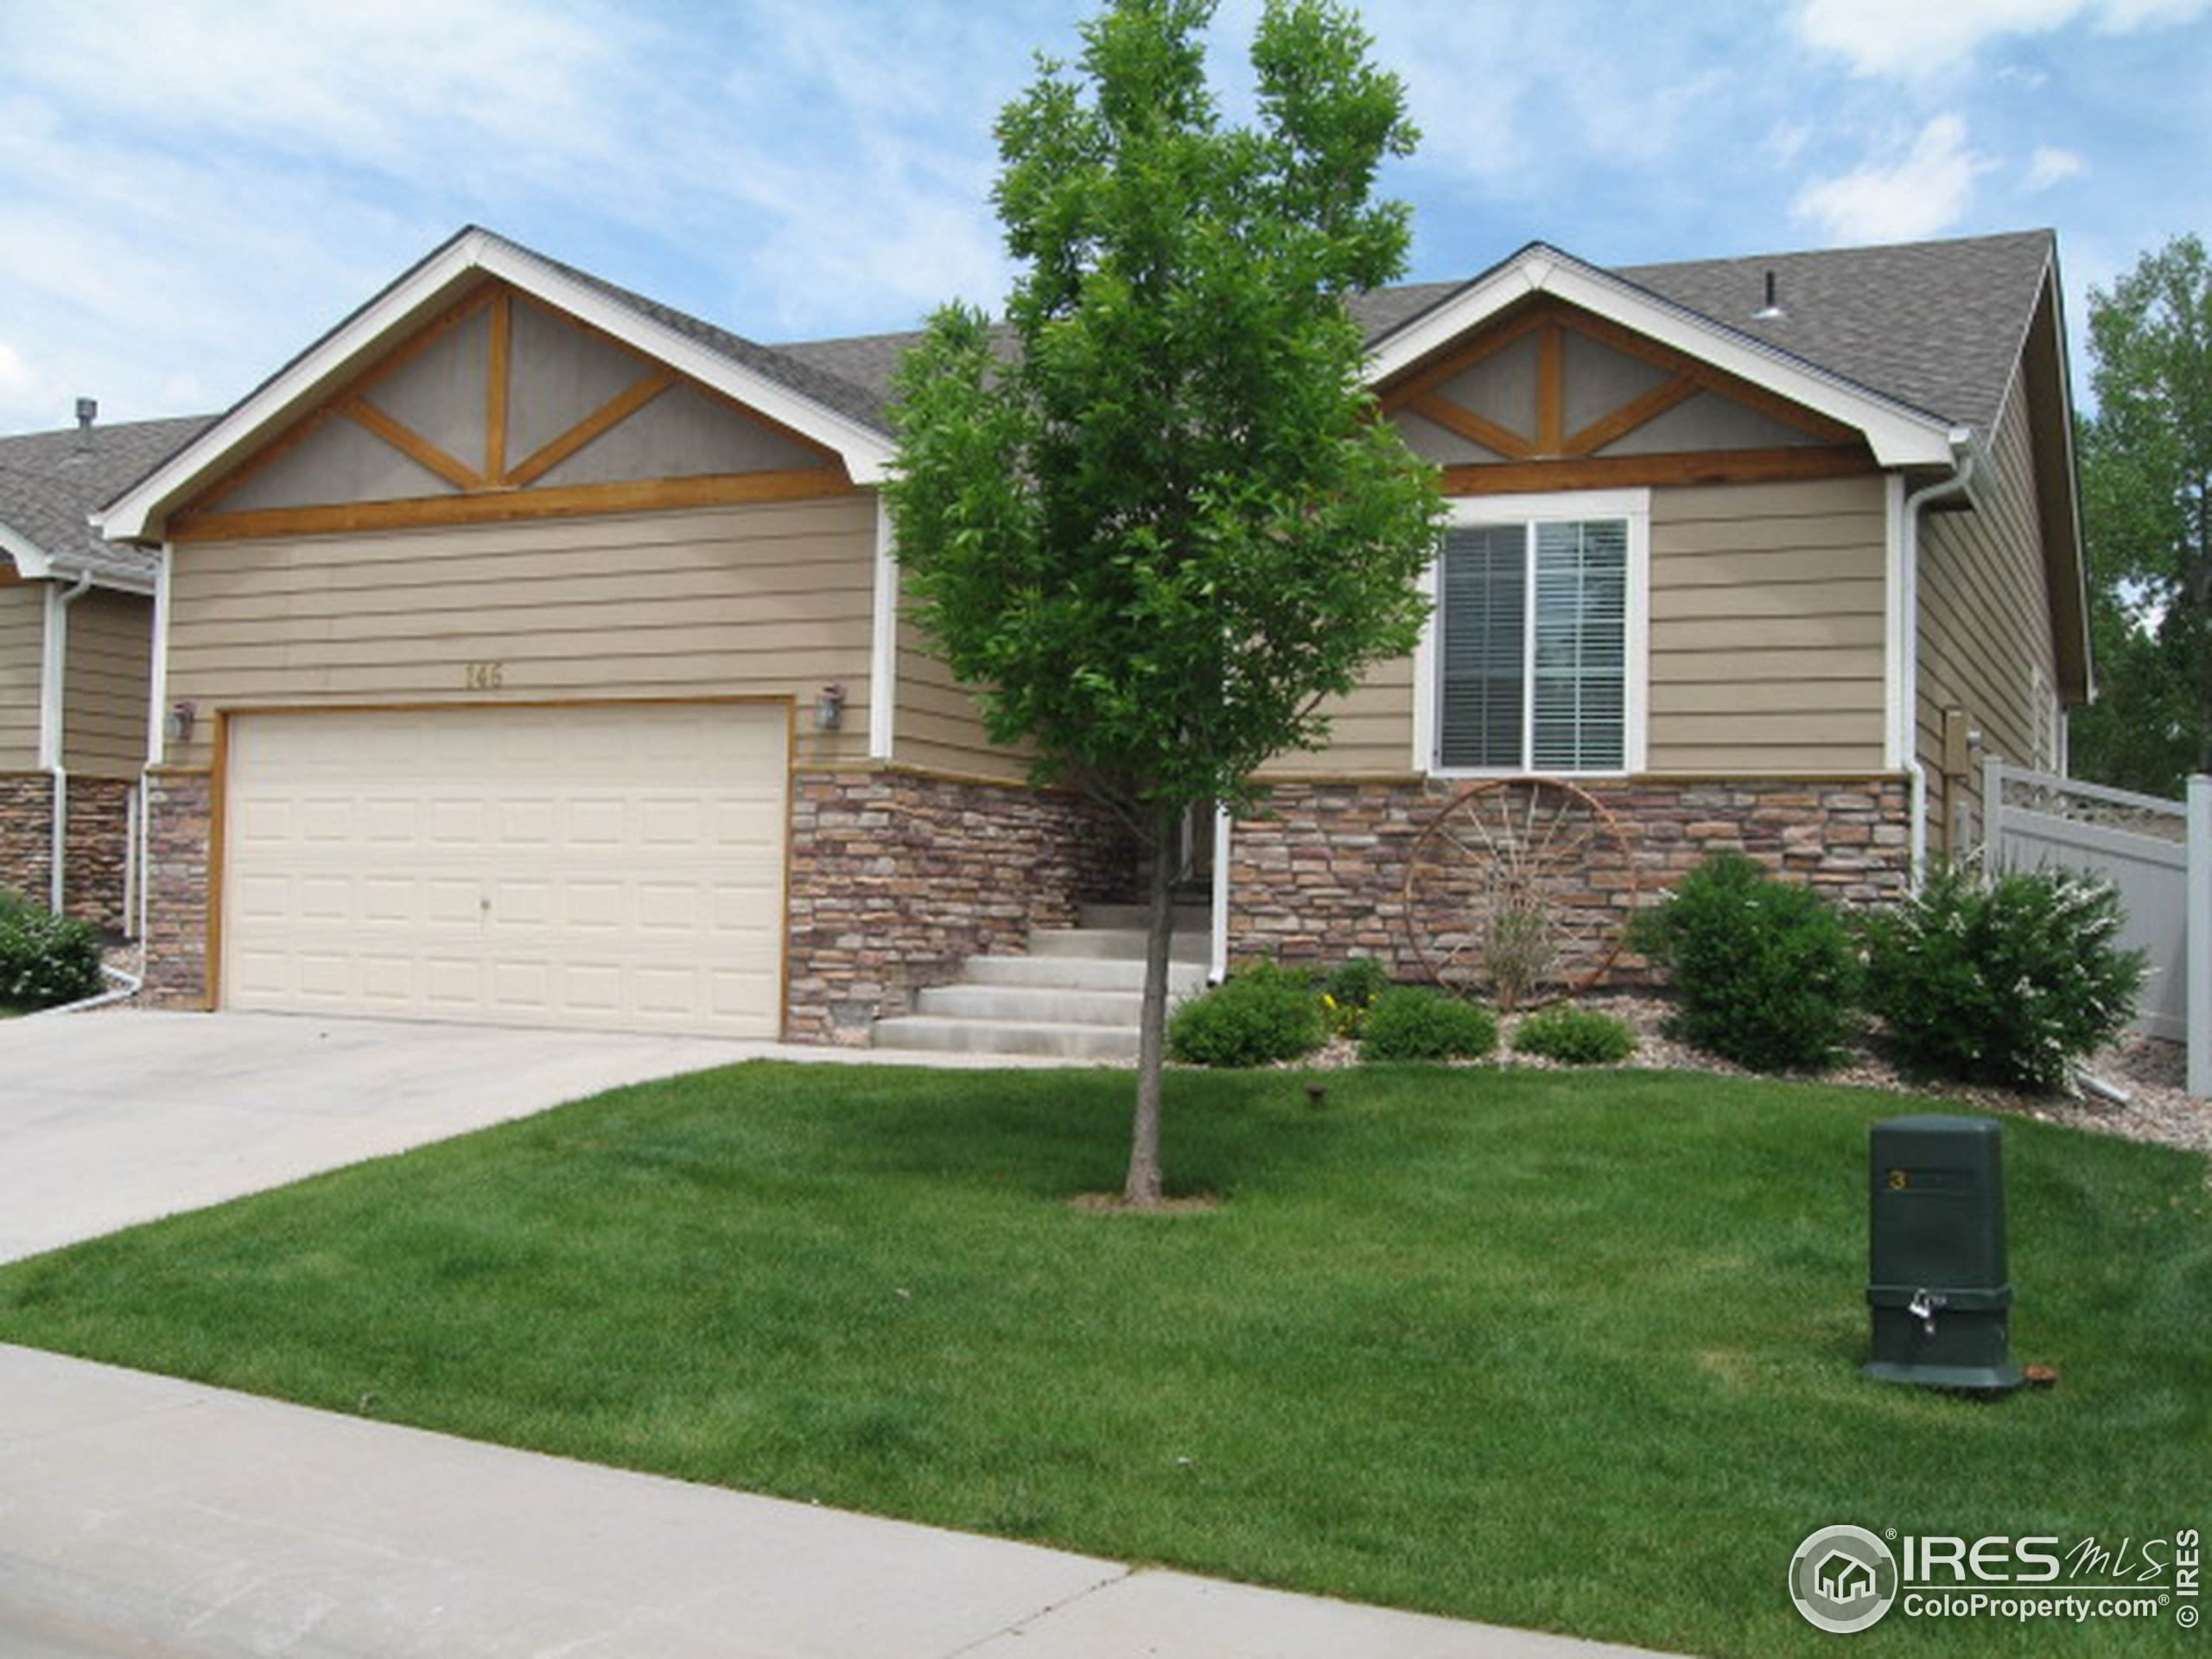 5574 Mystic Owl Ct, Loveland, CO 80537 (MLS #930833) :: The Sam Biller Home Team